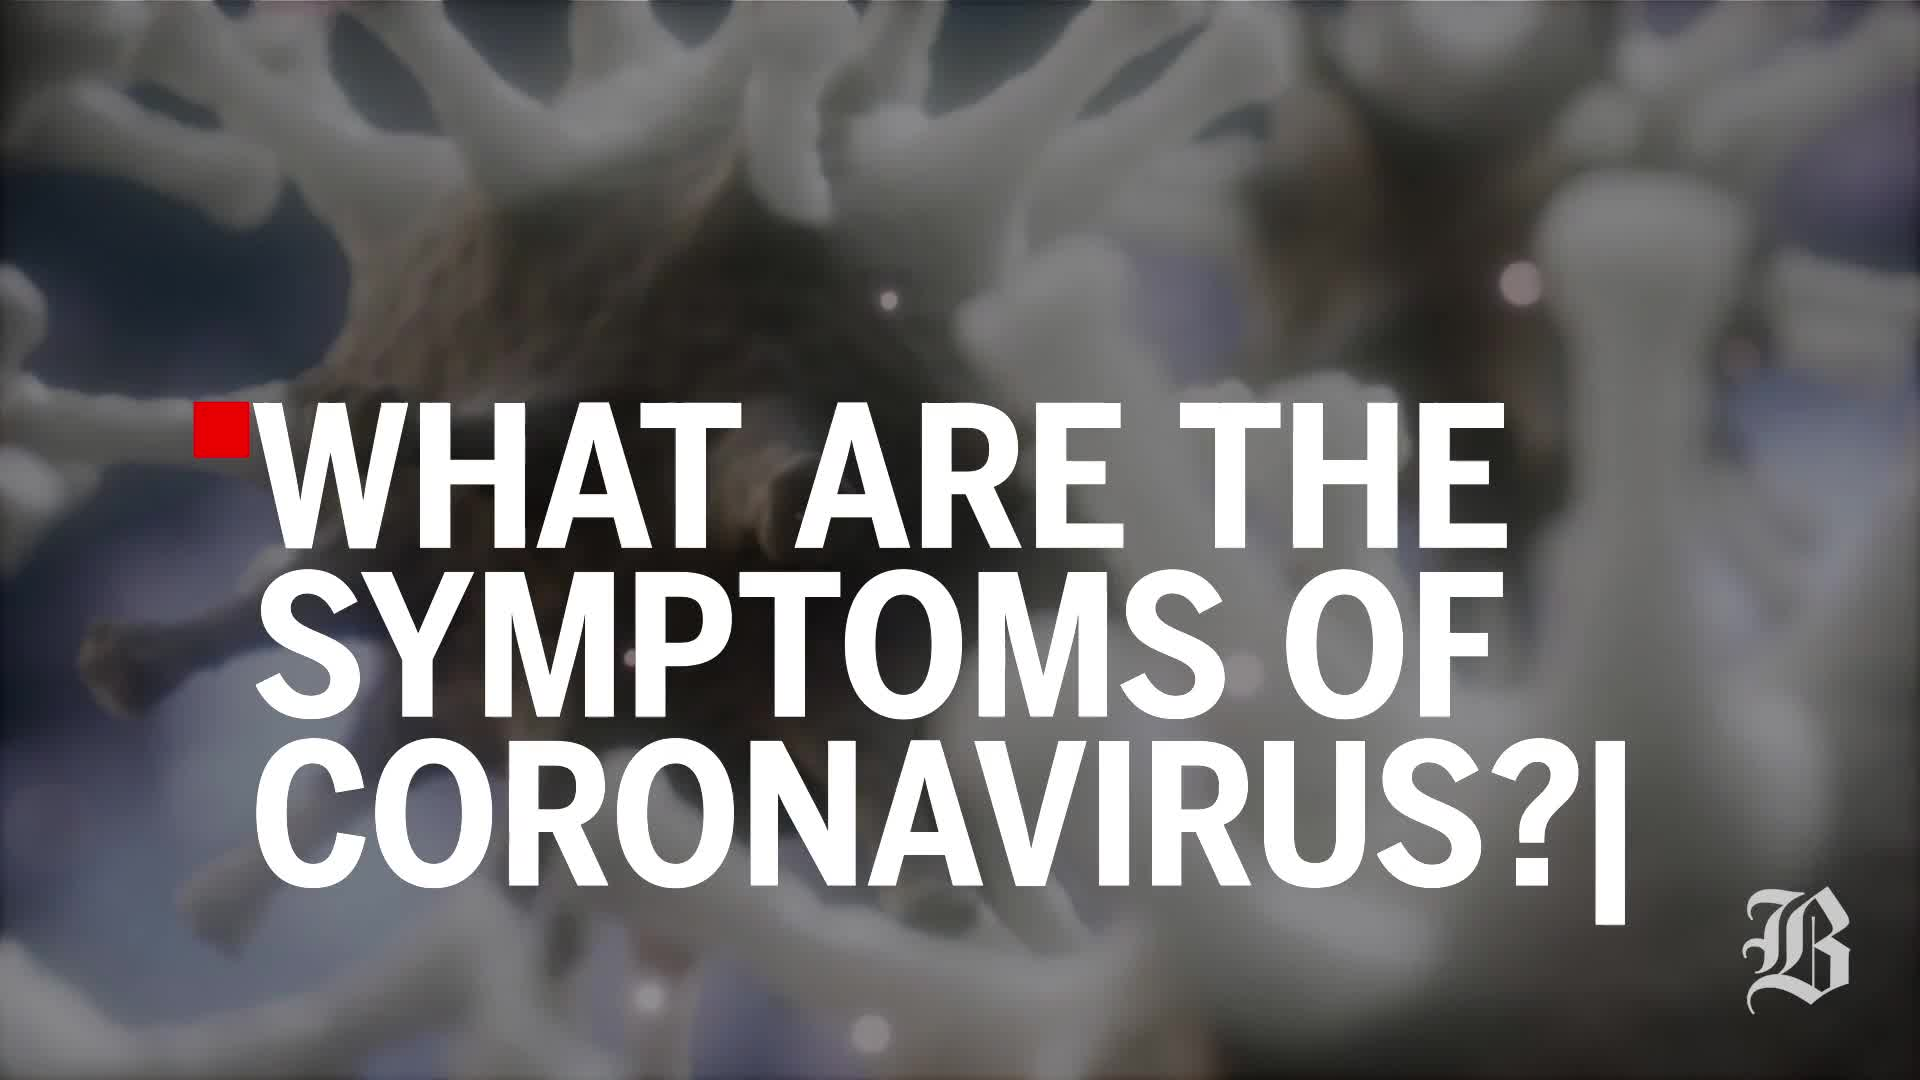 Coronavirus symptoms, and what to do if you have them - The Boston ...